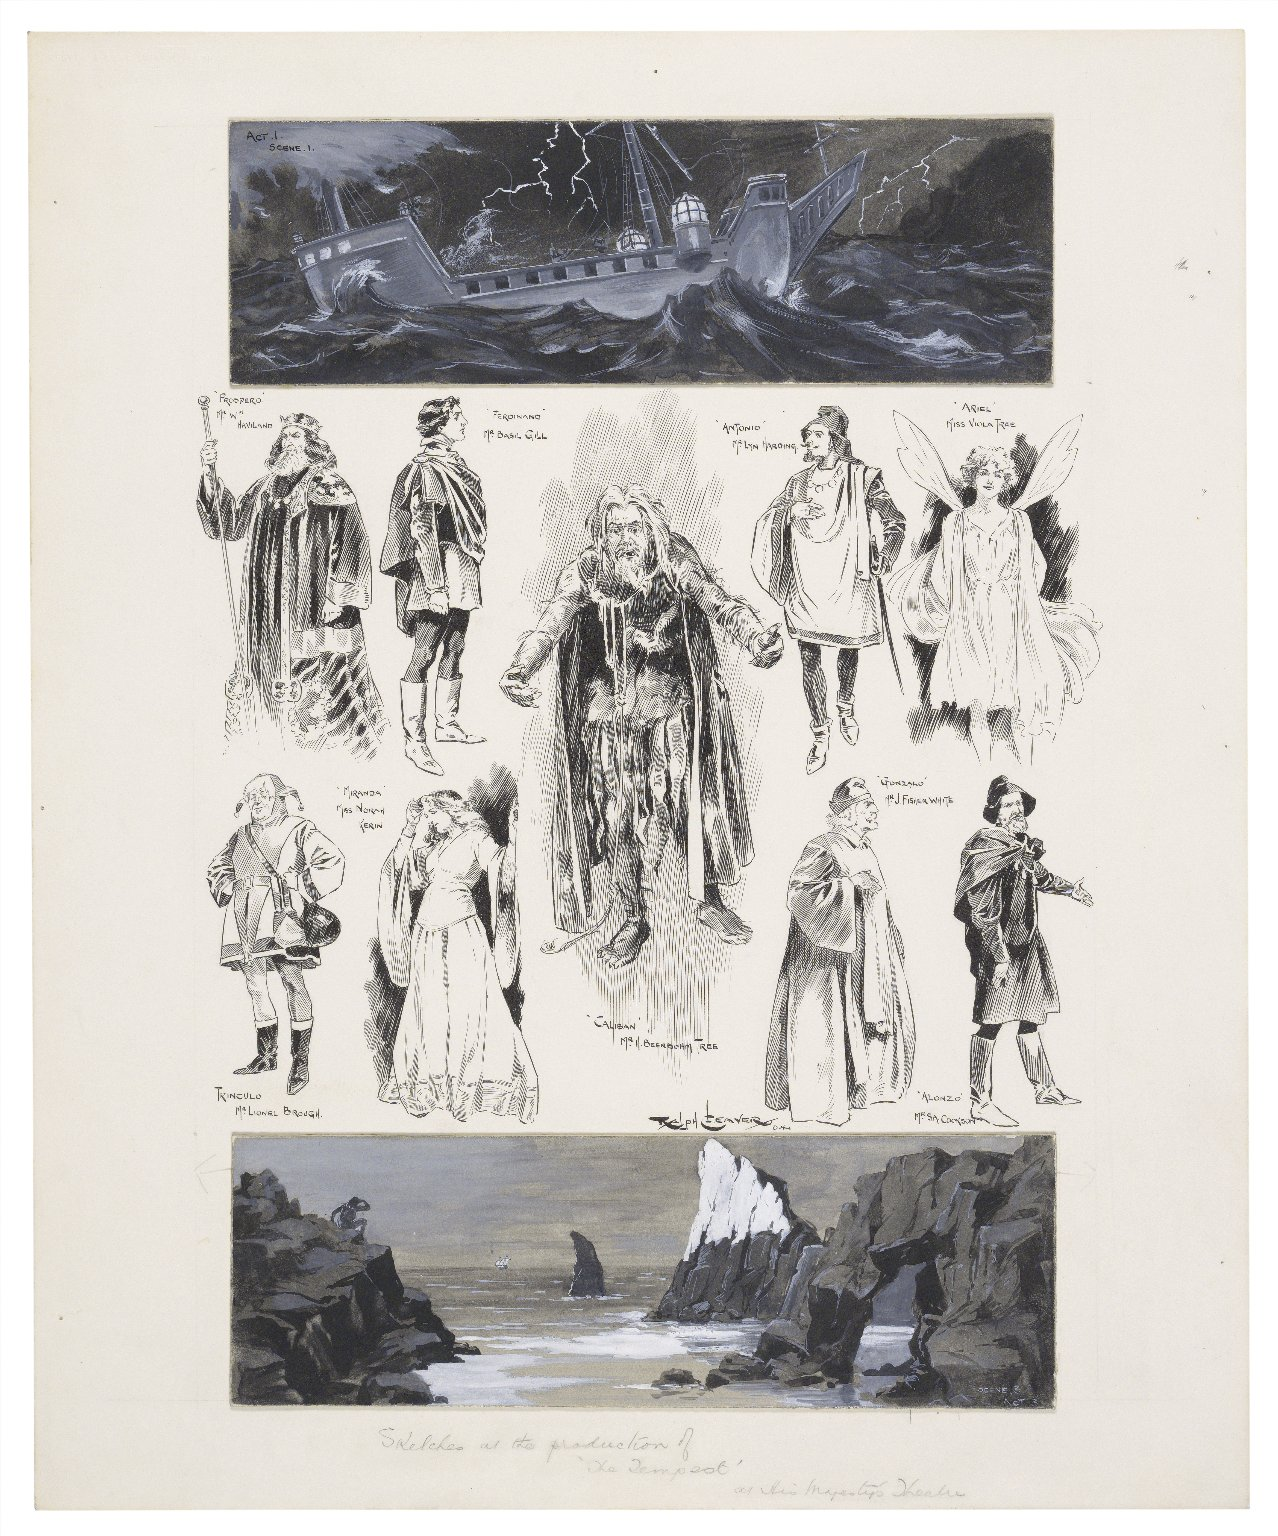 Collection of character sketches from a 1904 production of The Tempest, on the top is a picture of ship in a storm, on the bottom a picture of a small figure watching a boat on the horizon on a rock